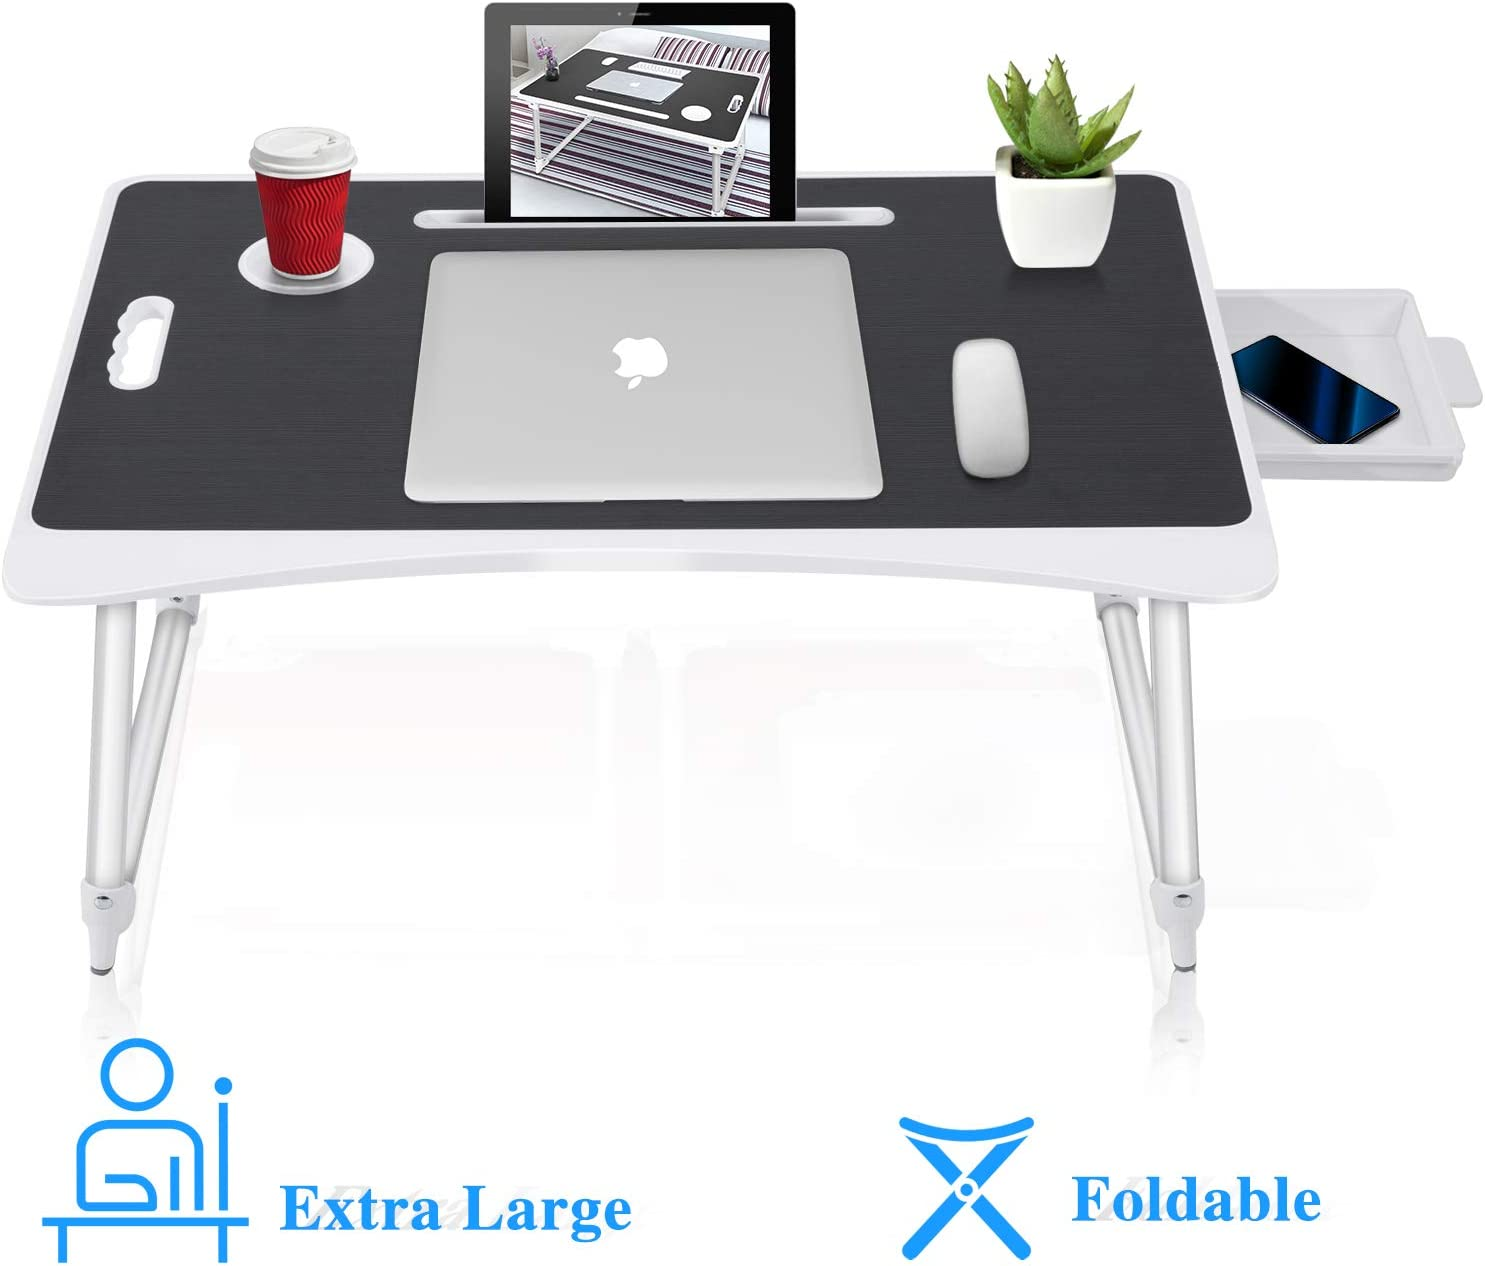 SUNPOLLO Folding Laptop Lap Desk for Bed & Sofa, Multi-Function Couch Table, Laptop Bed Tray Desk with Storage Drawer and Cup Holder for Writing, Studying, Eating, Reading, Extra Large